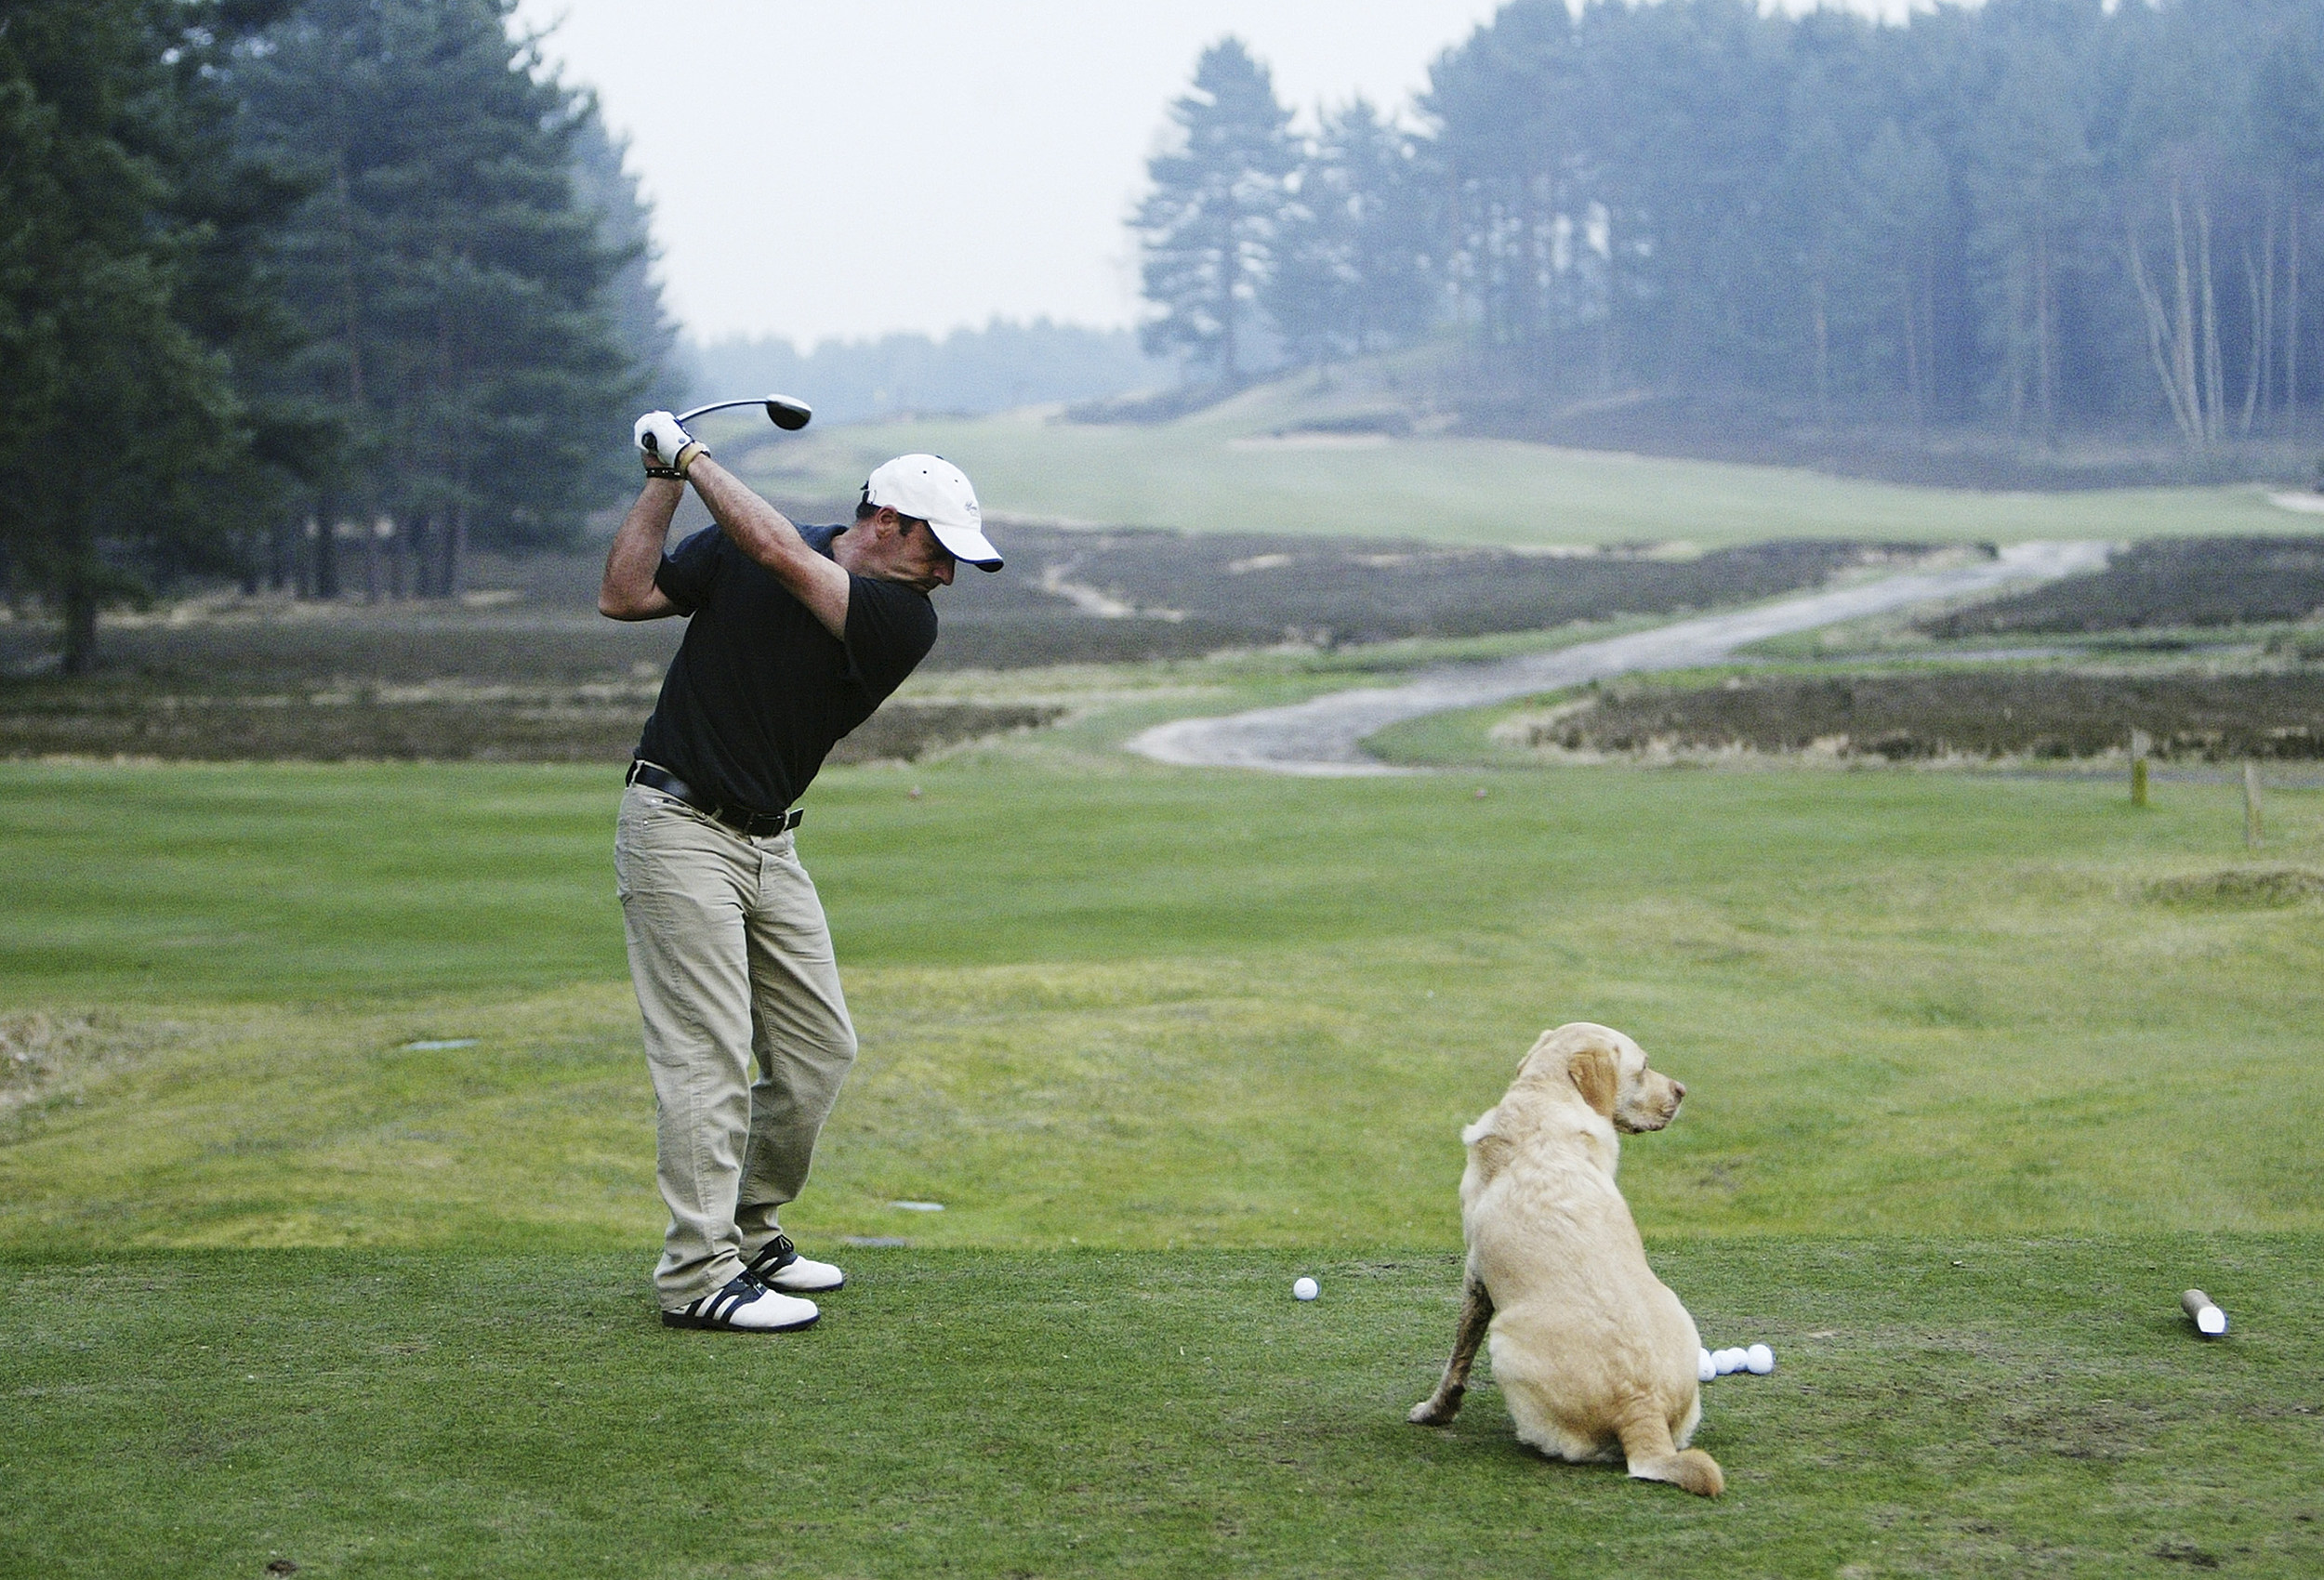 Dog and Golfer